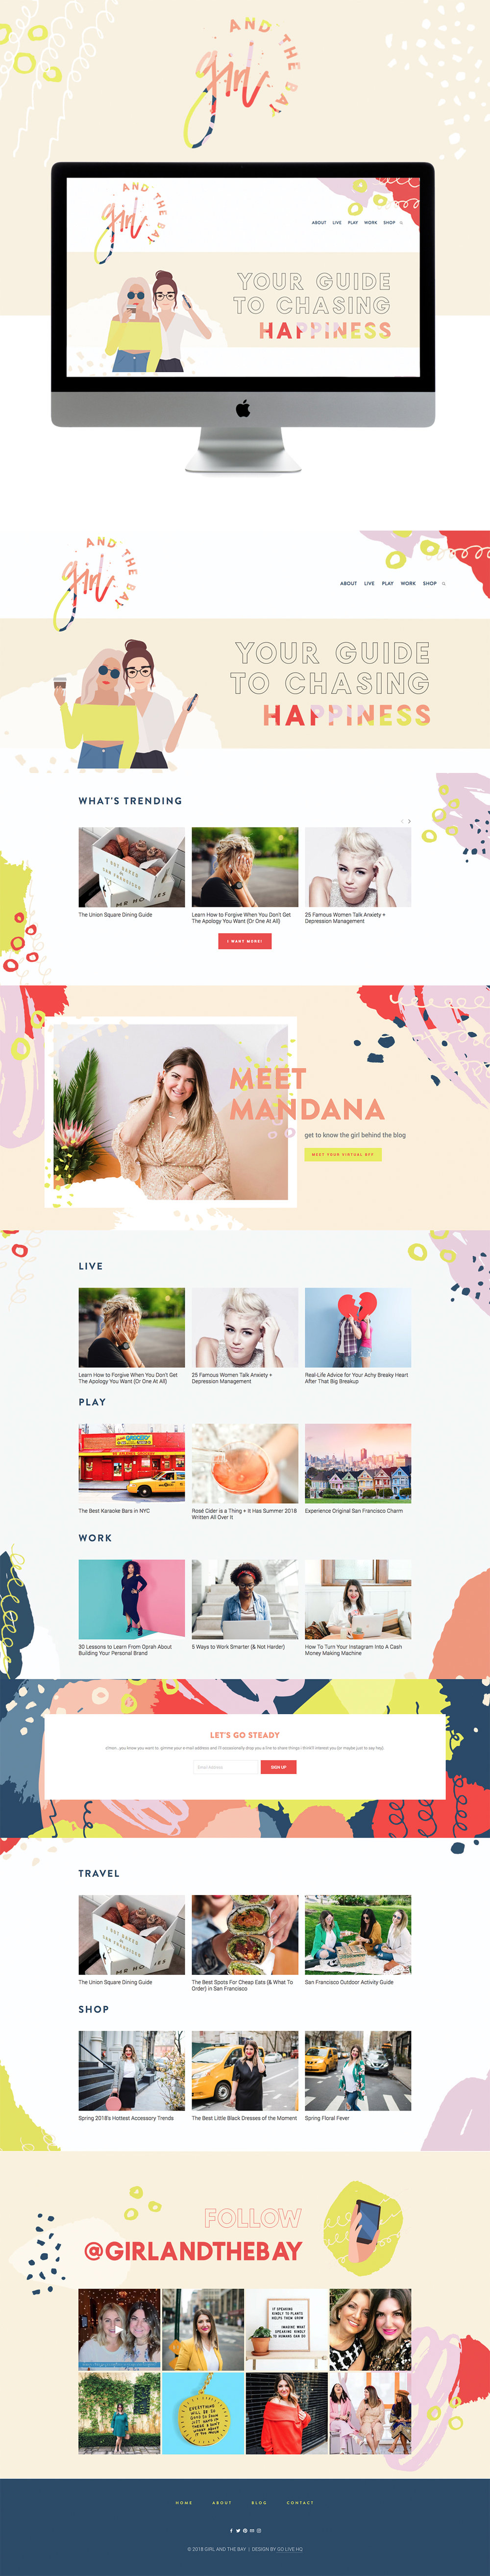 Creative, Colorful Website Design for Lifestyle Blog | Site Design by Go Live HQ